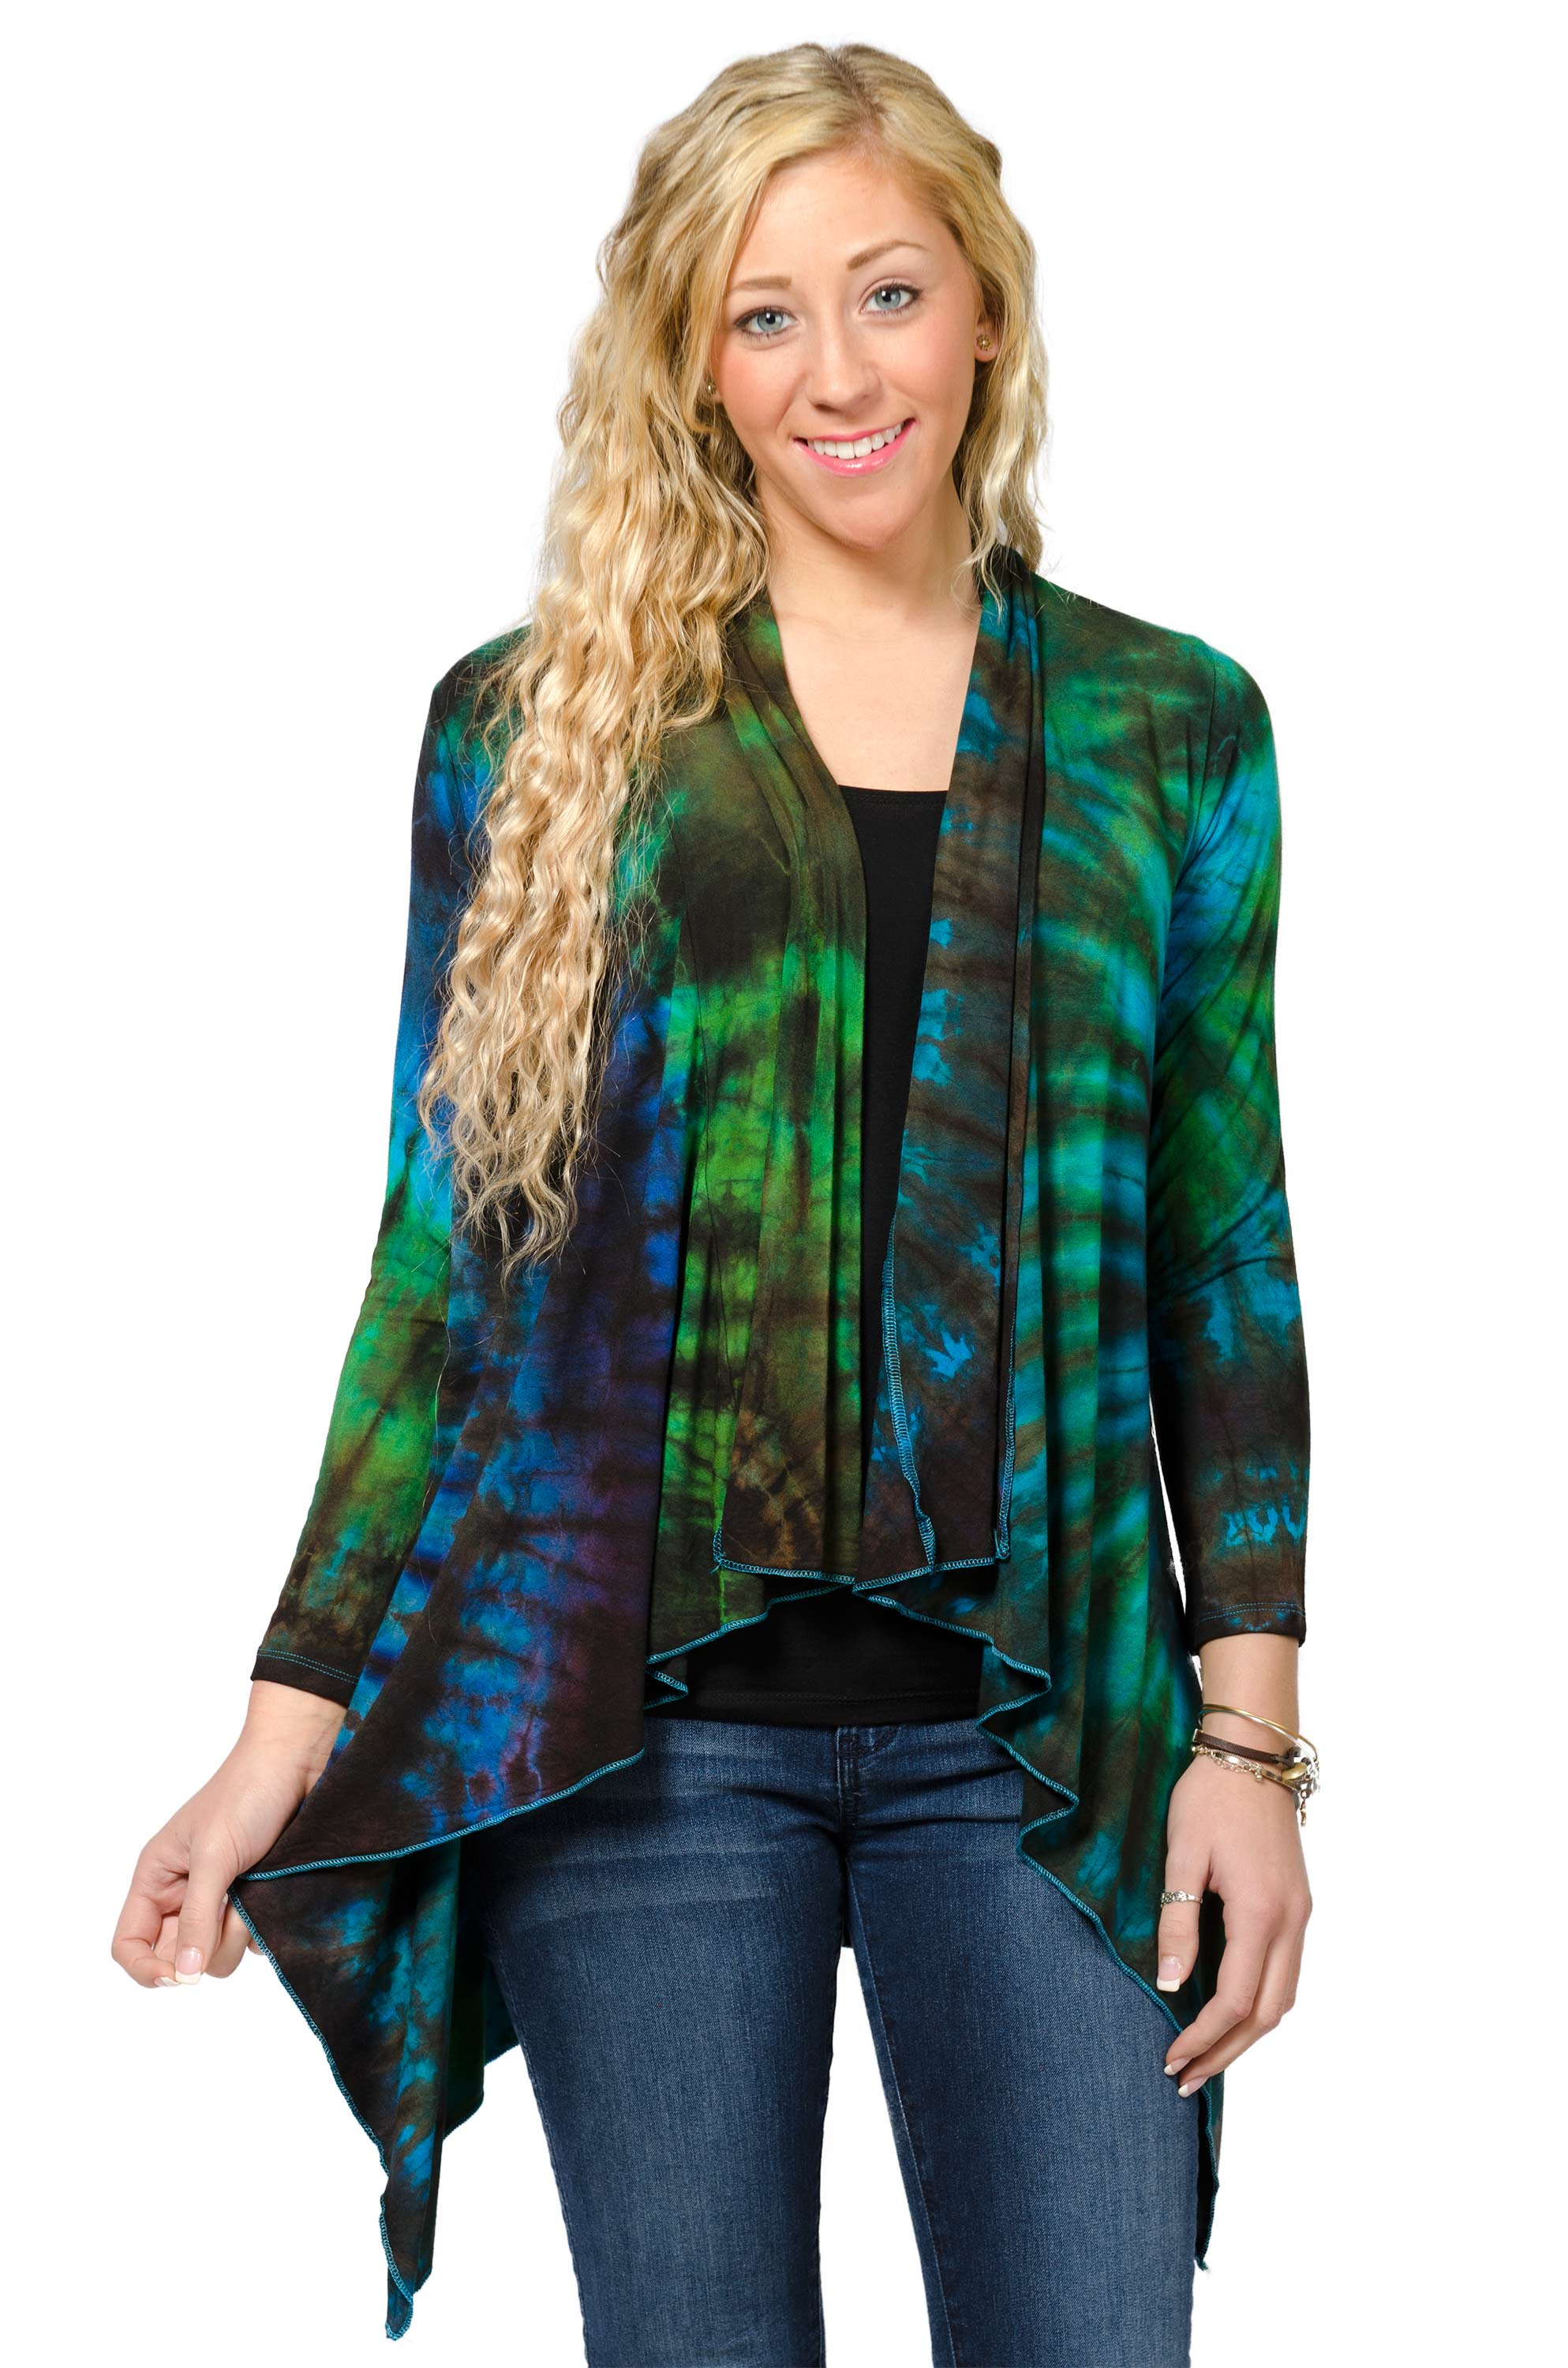 Kimono Cardigan Hand Painted Tie Dye - Blue Green Multi